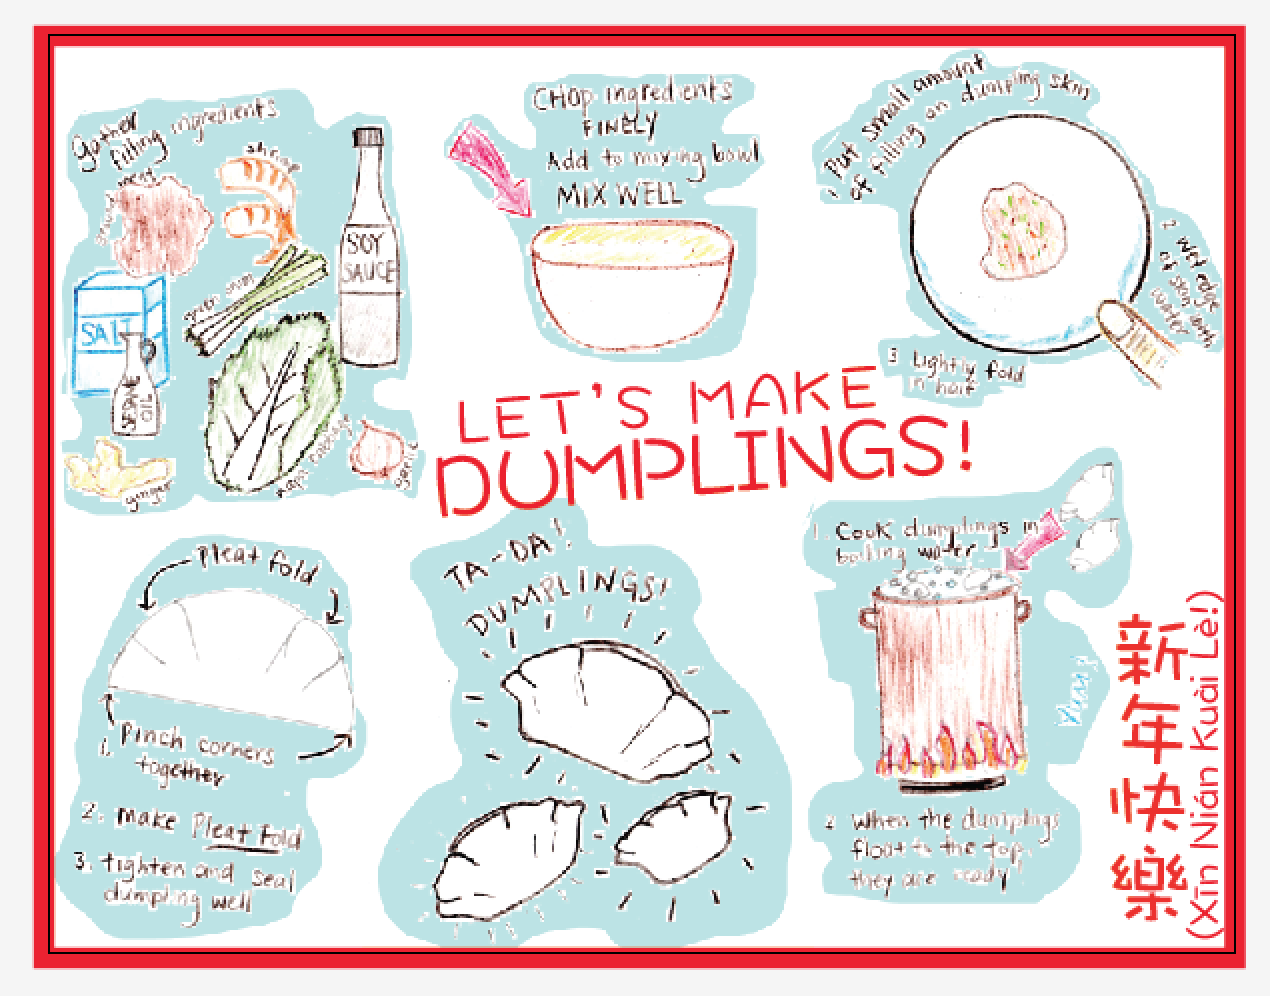 Dumpling description for Chinese New Years. My friend made this!